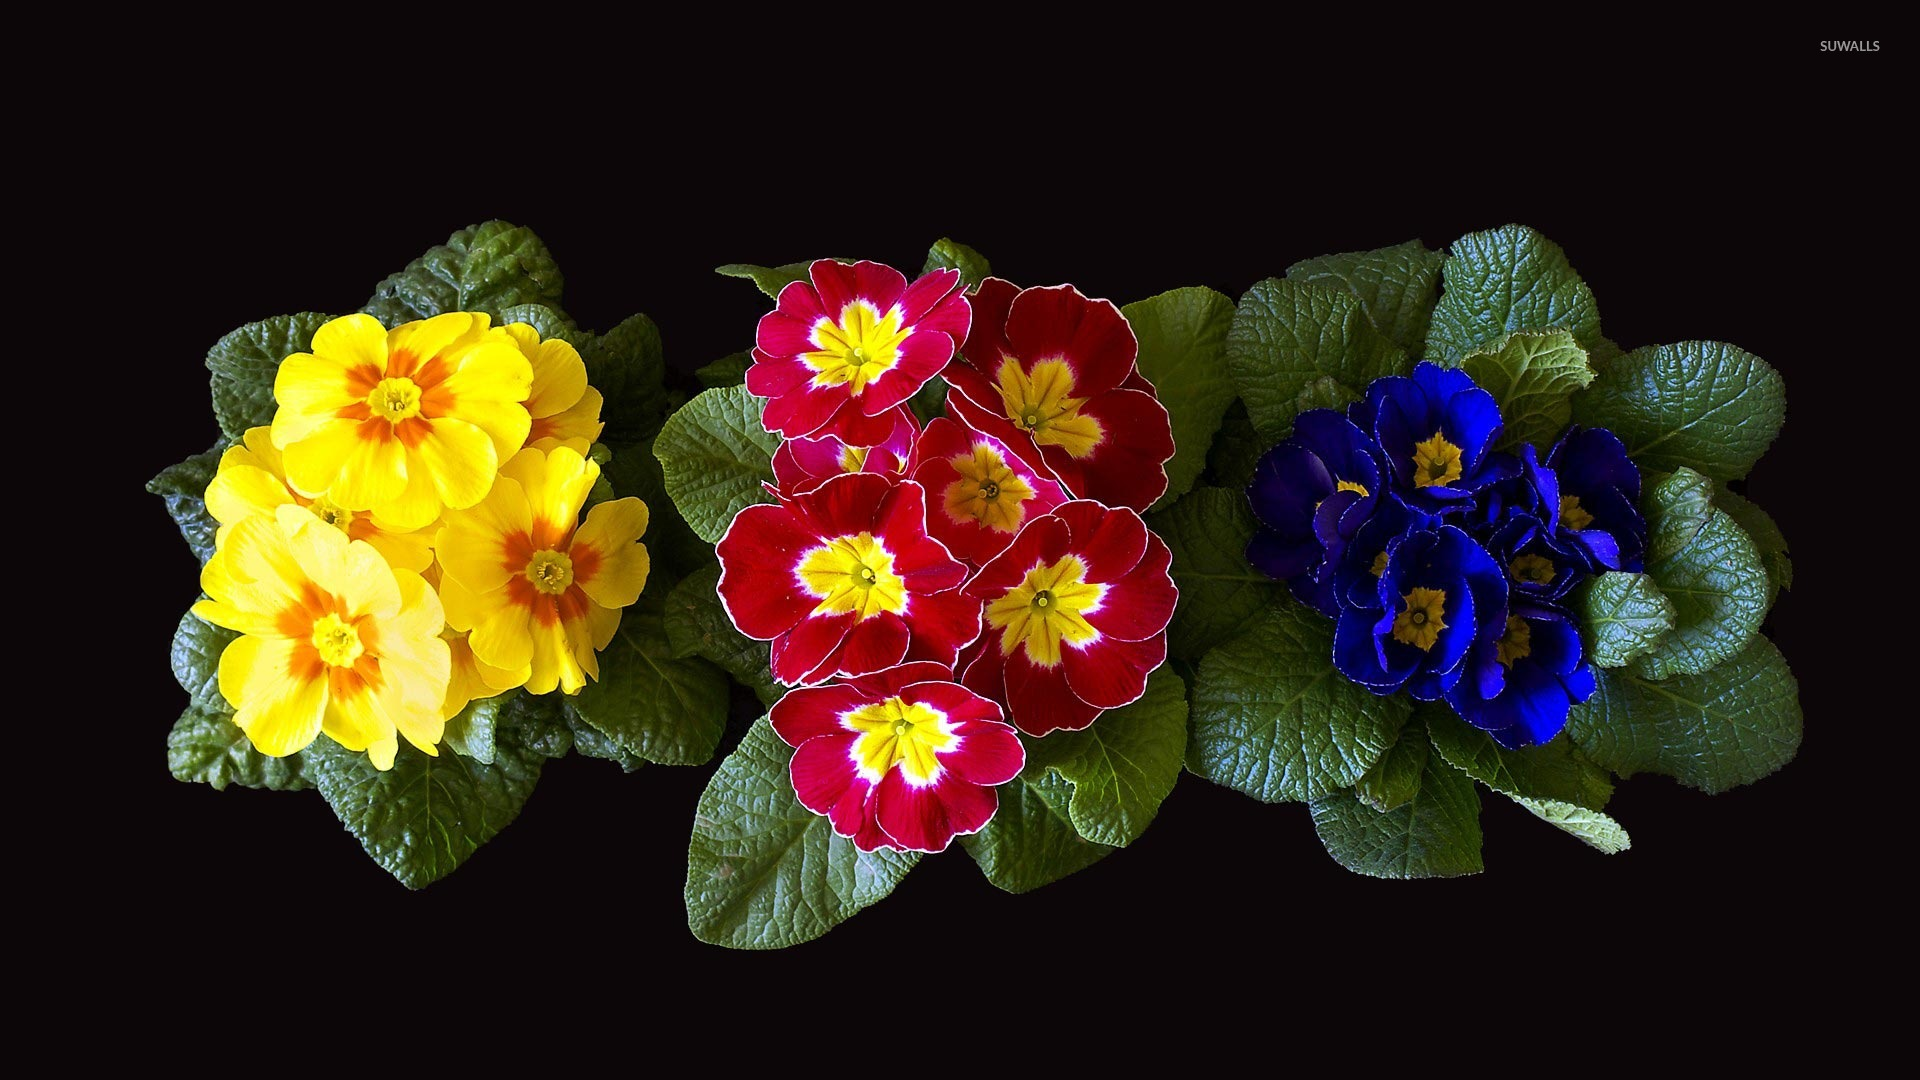 Colorful Primulas Flowers Rising From Basal Rosettes Of Leaves 48119 1920×1080 Wallpaper